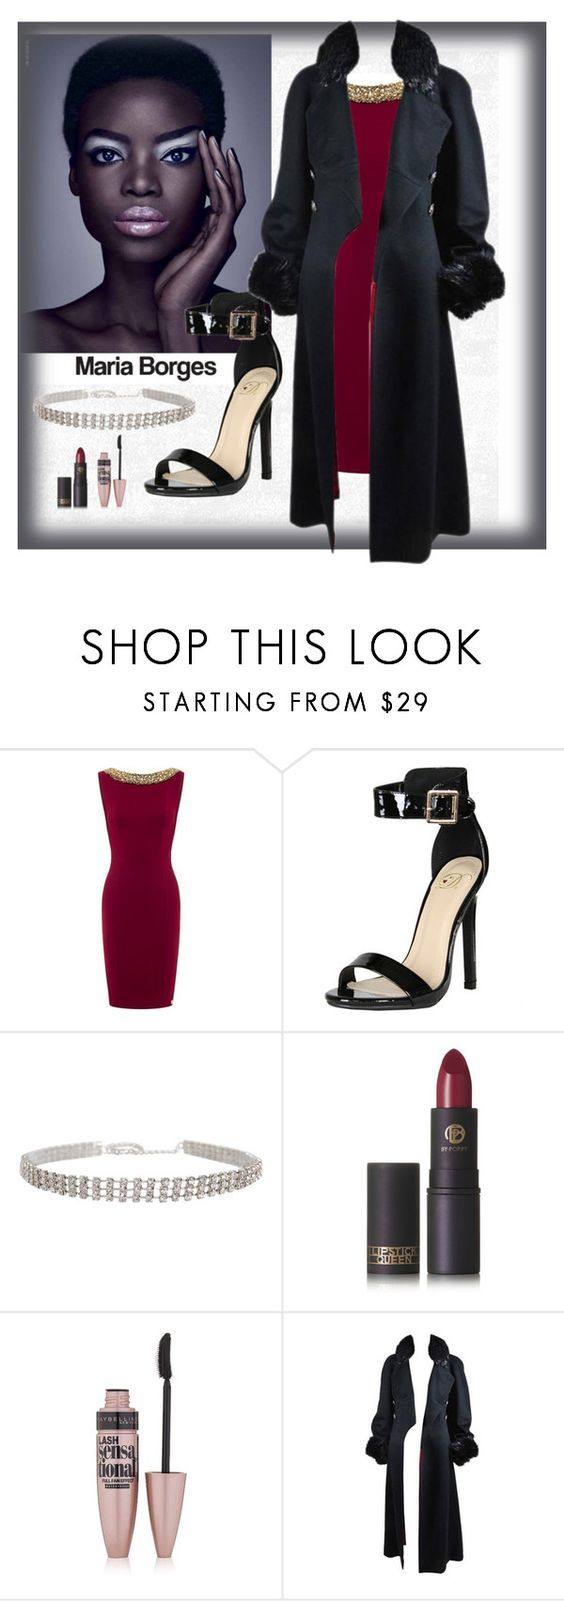 """""""glam fashion"""" by lana-pavlovic ❤ liked on Polyvore featuring Delicious, Humble Chic, Lipstick Queen, Maybelline and Chanel"""